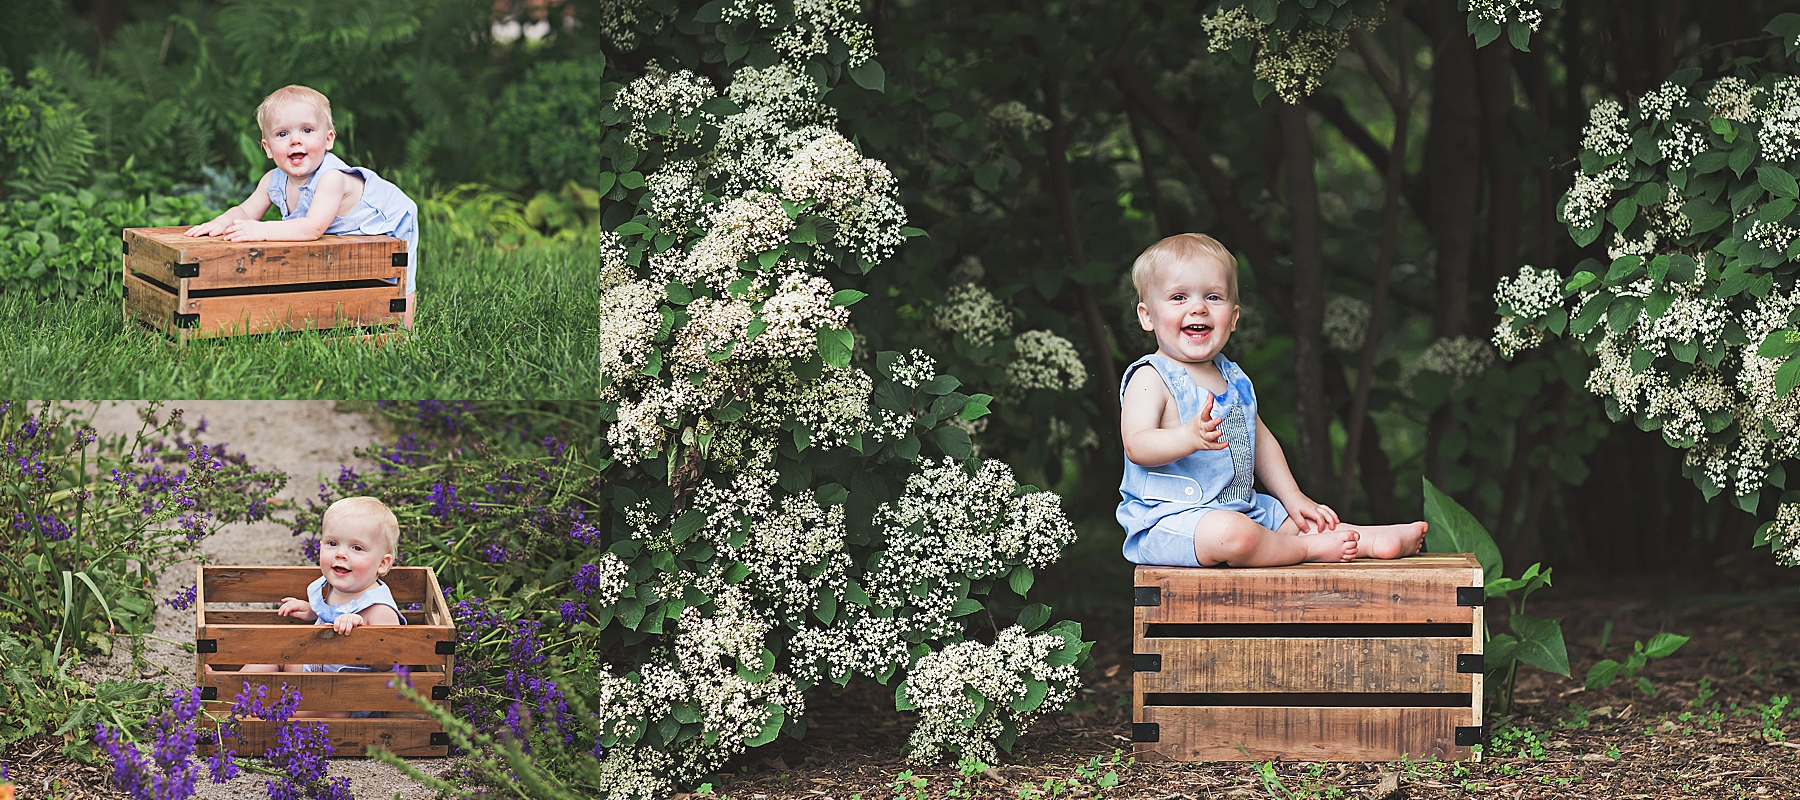 little boy on a box posing for photo how to take good pictures kristina rose photography